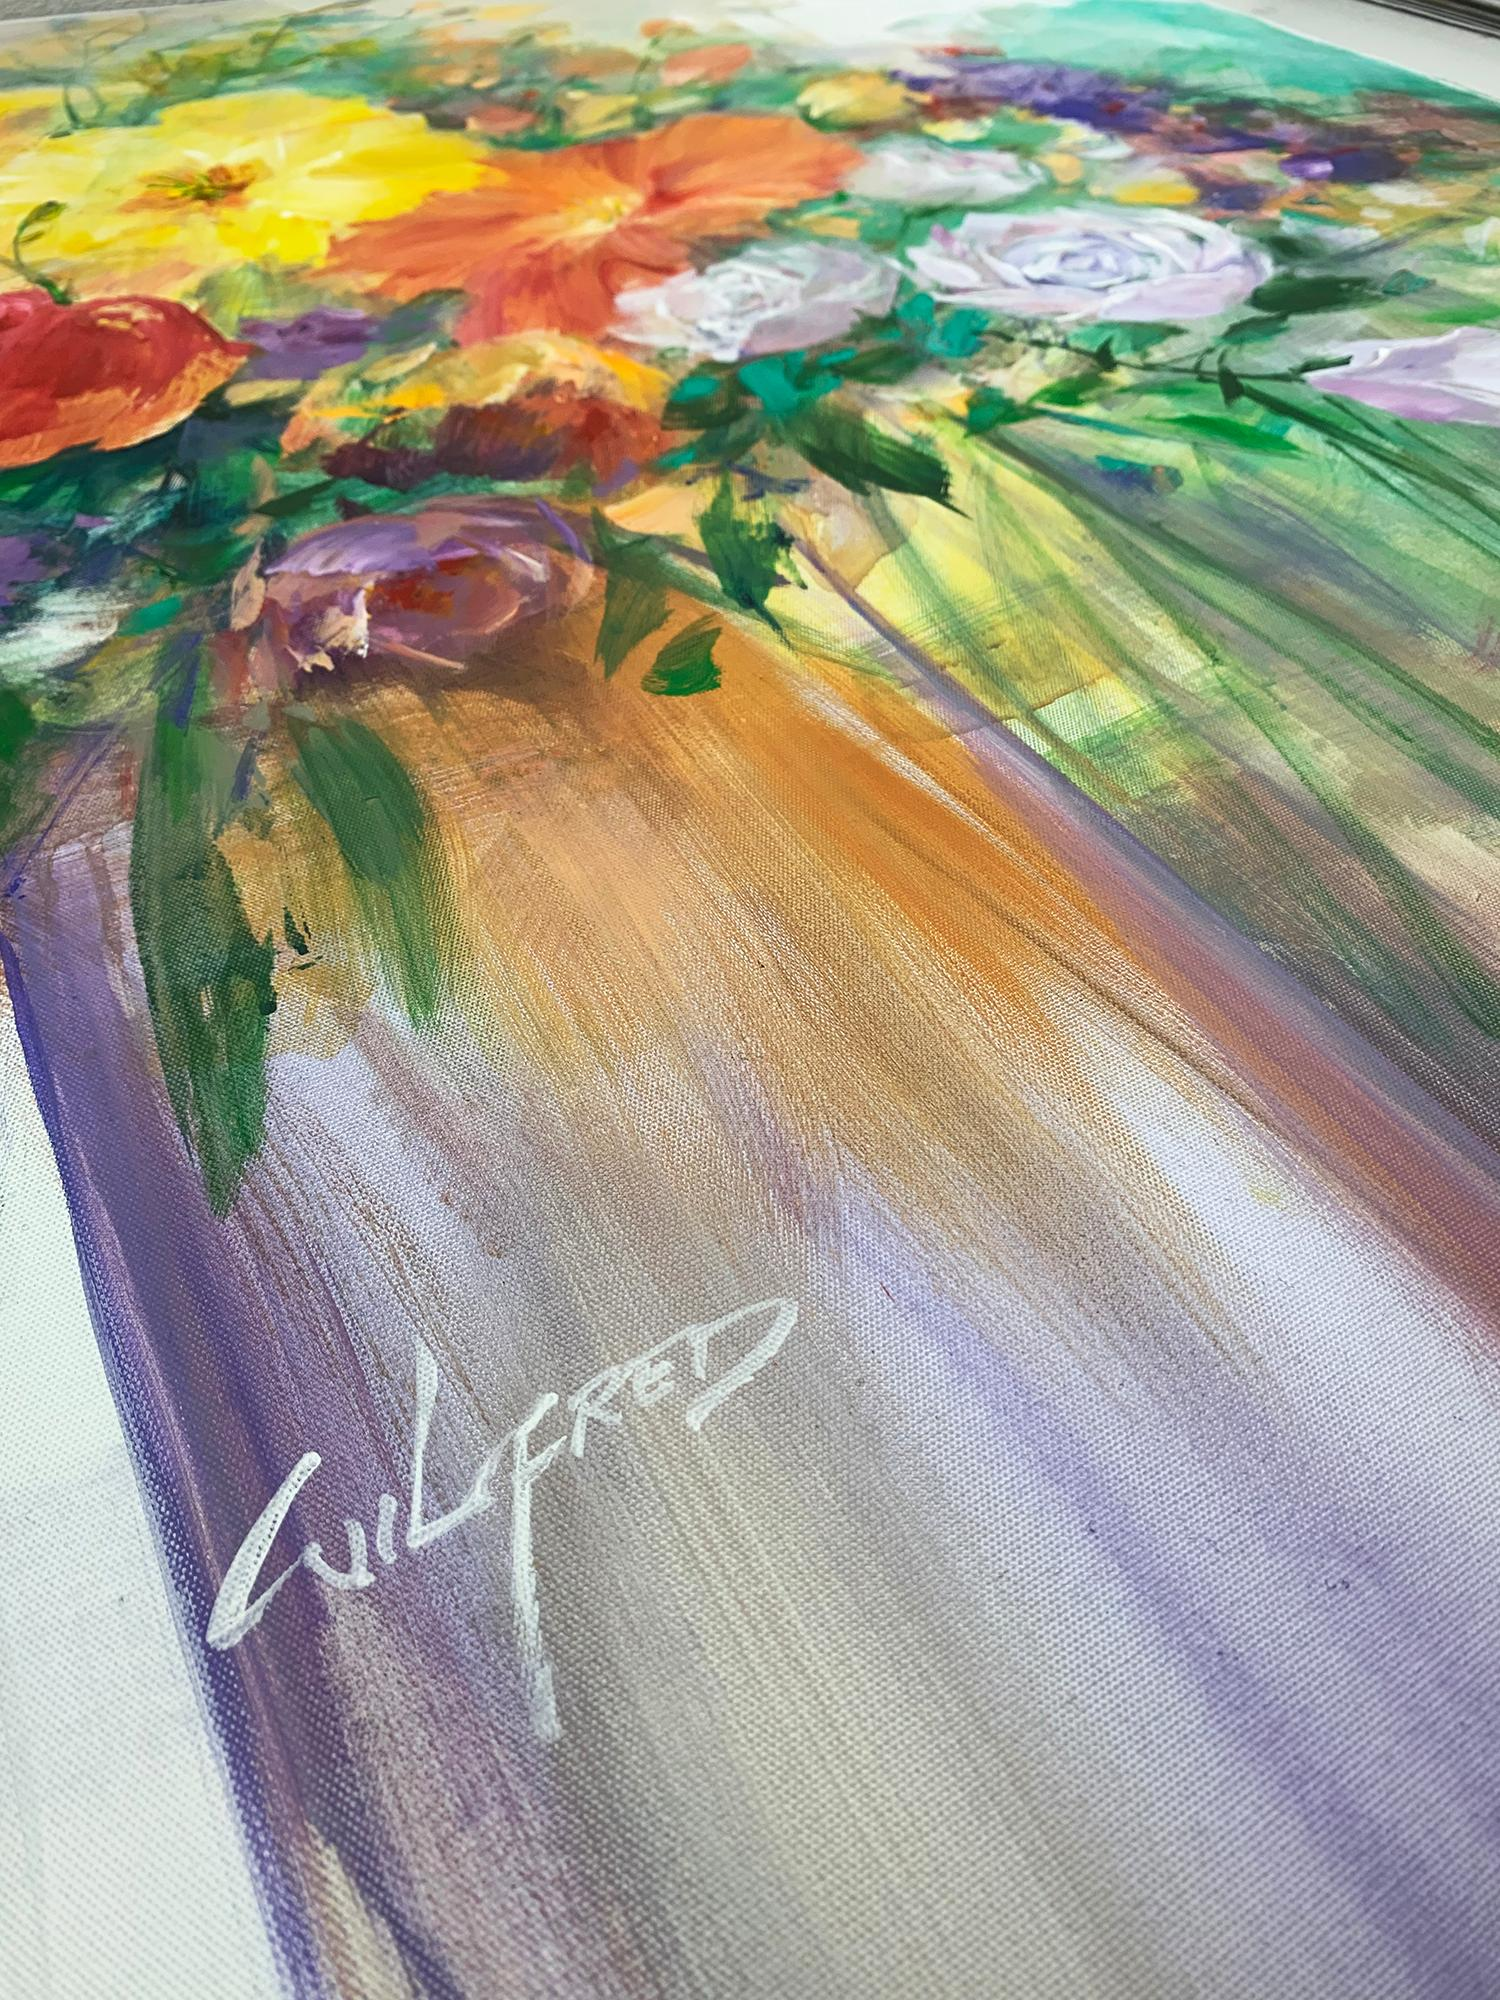 Flowers For You Acrylic On Canvas Semi Abstract Painting By Wilfred